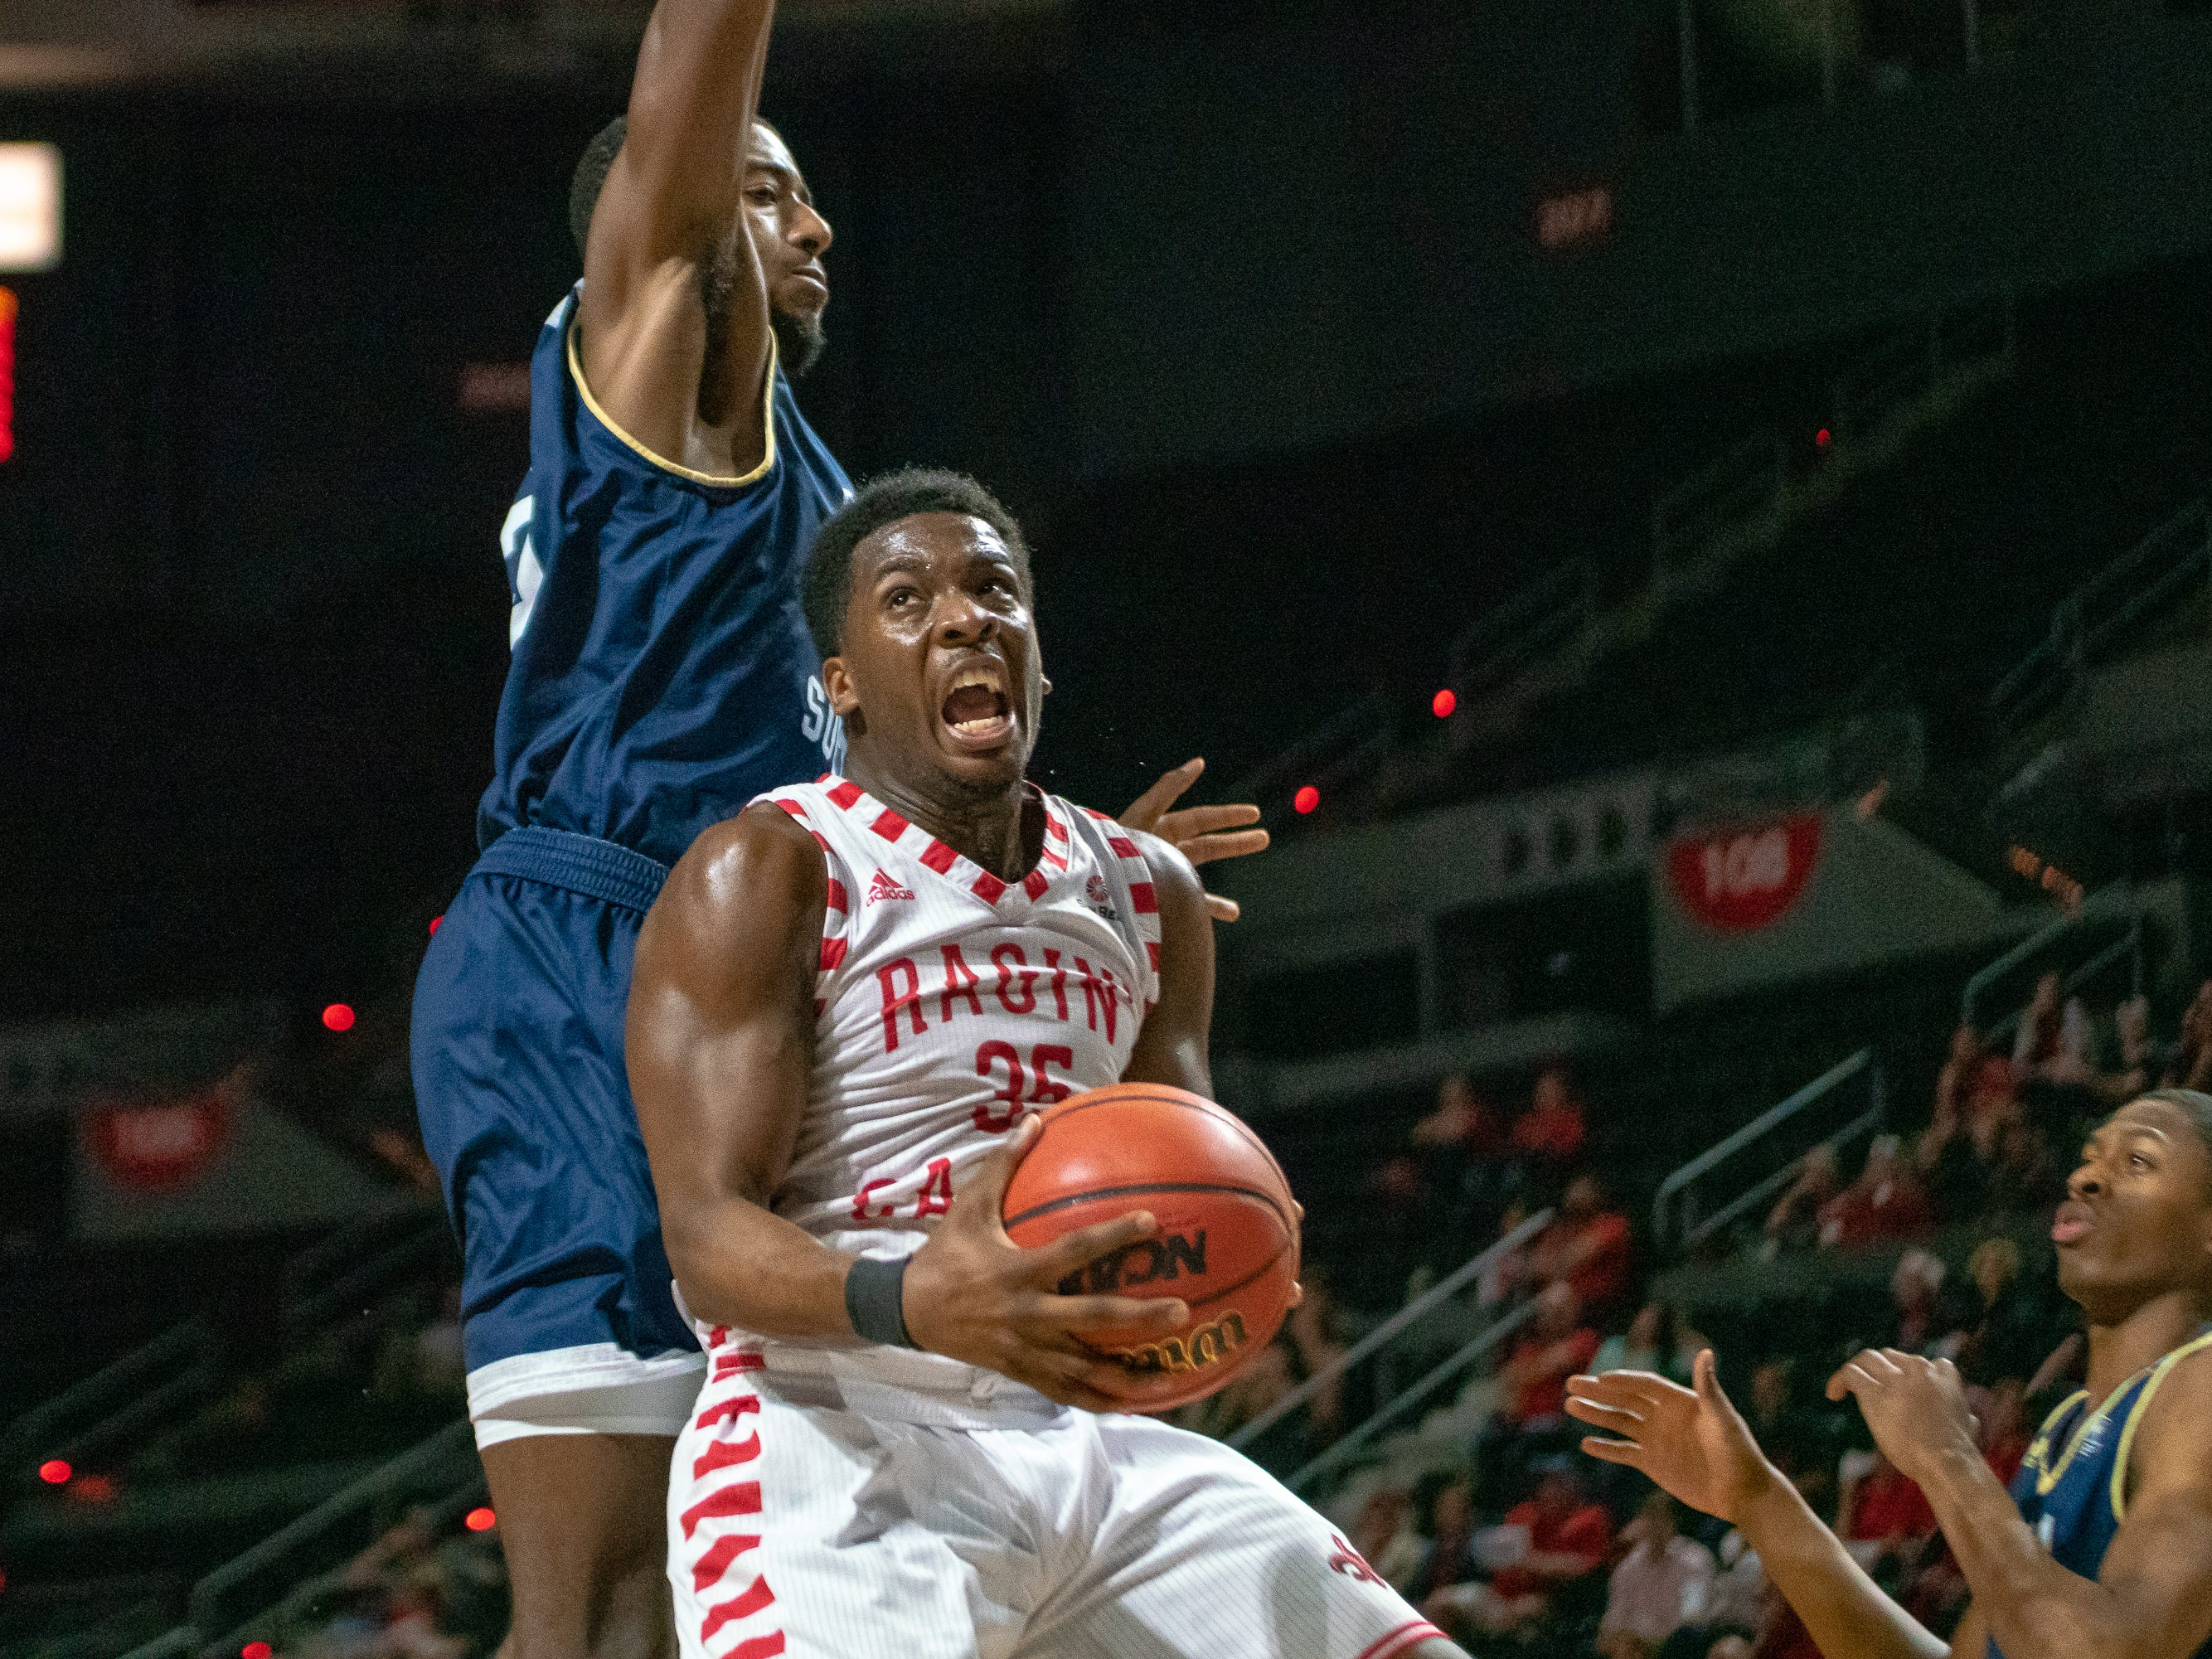 UL's Marcus Stroman attempts a shot from under the goal as the Ragin' Cajuns take on the Georgia Southern Eagles at the Cajundome on Feb. 6, 2019.